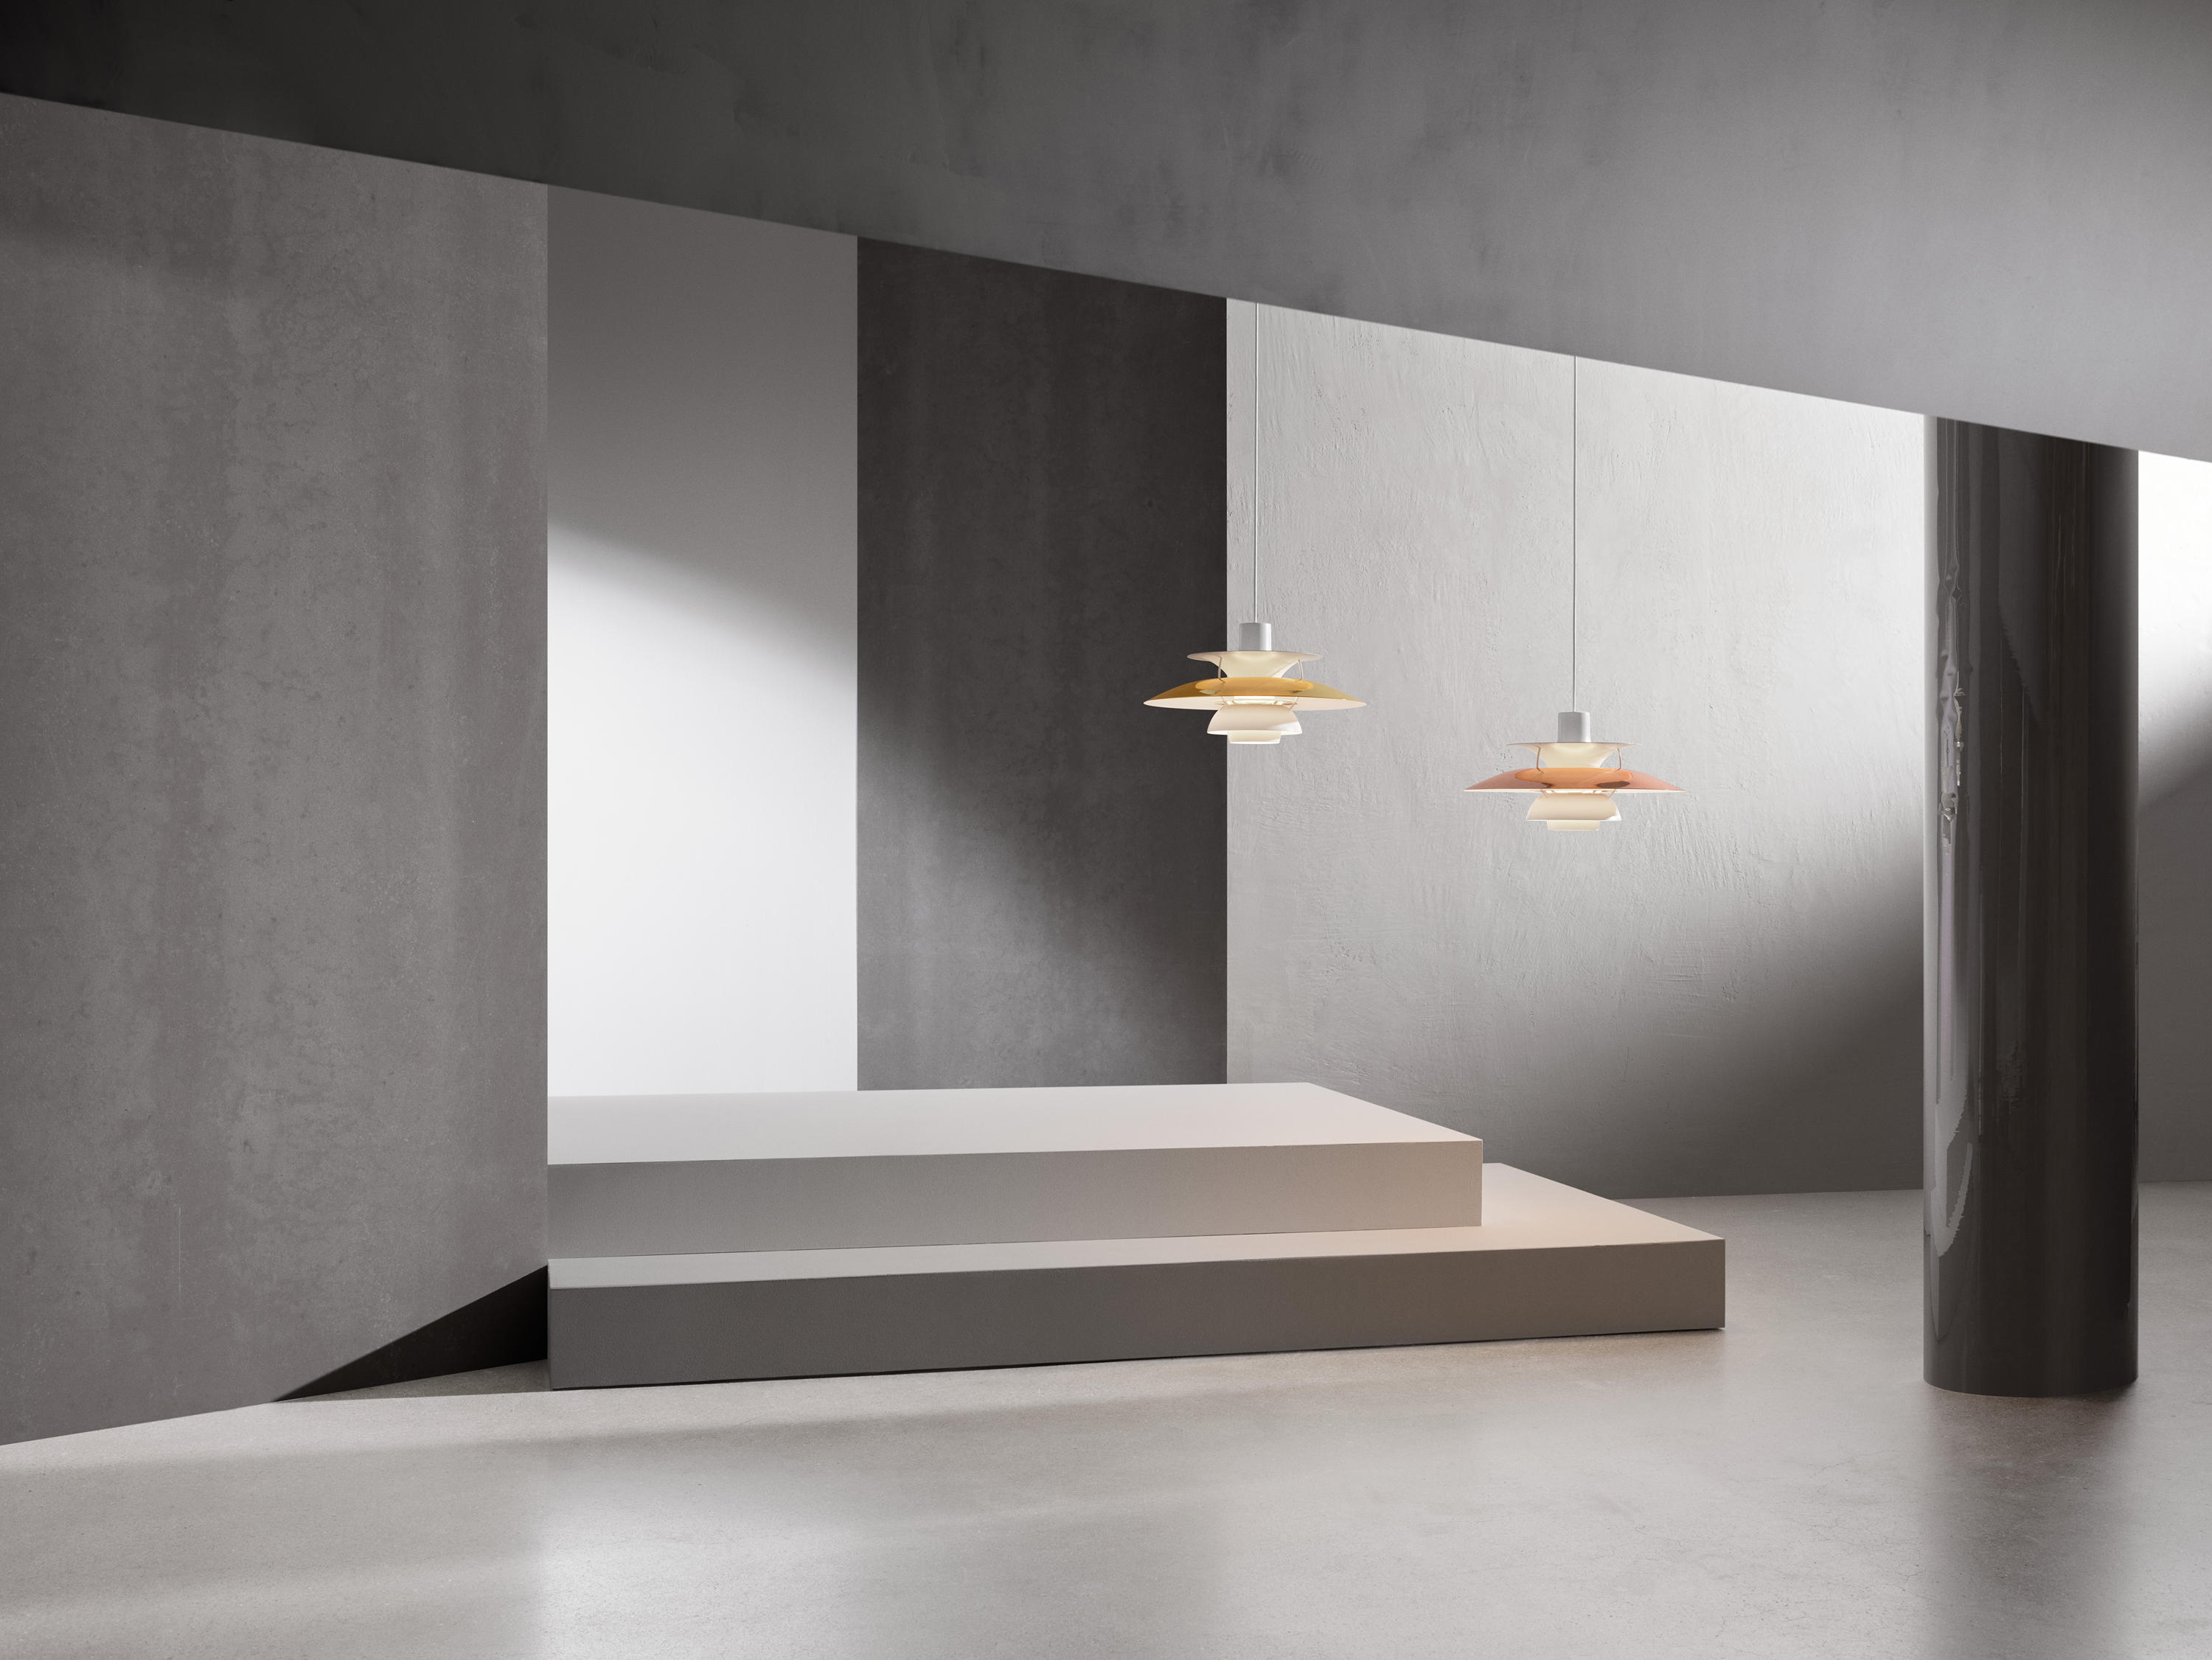 Ph 5 Ph 5 Suspended Lights From Louis Poulsen Architonic